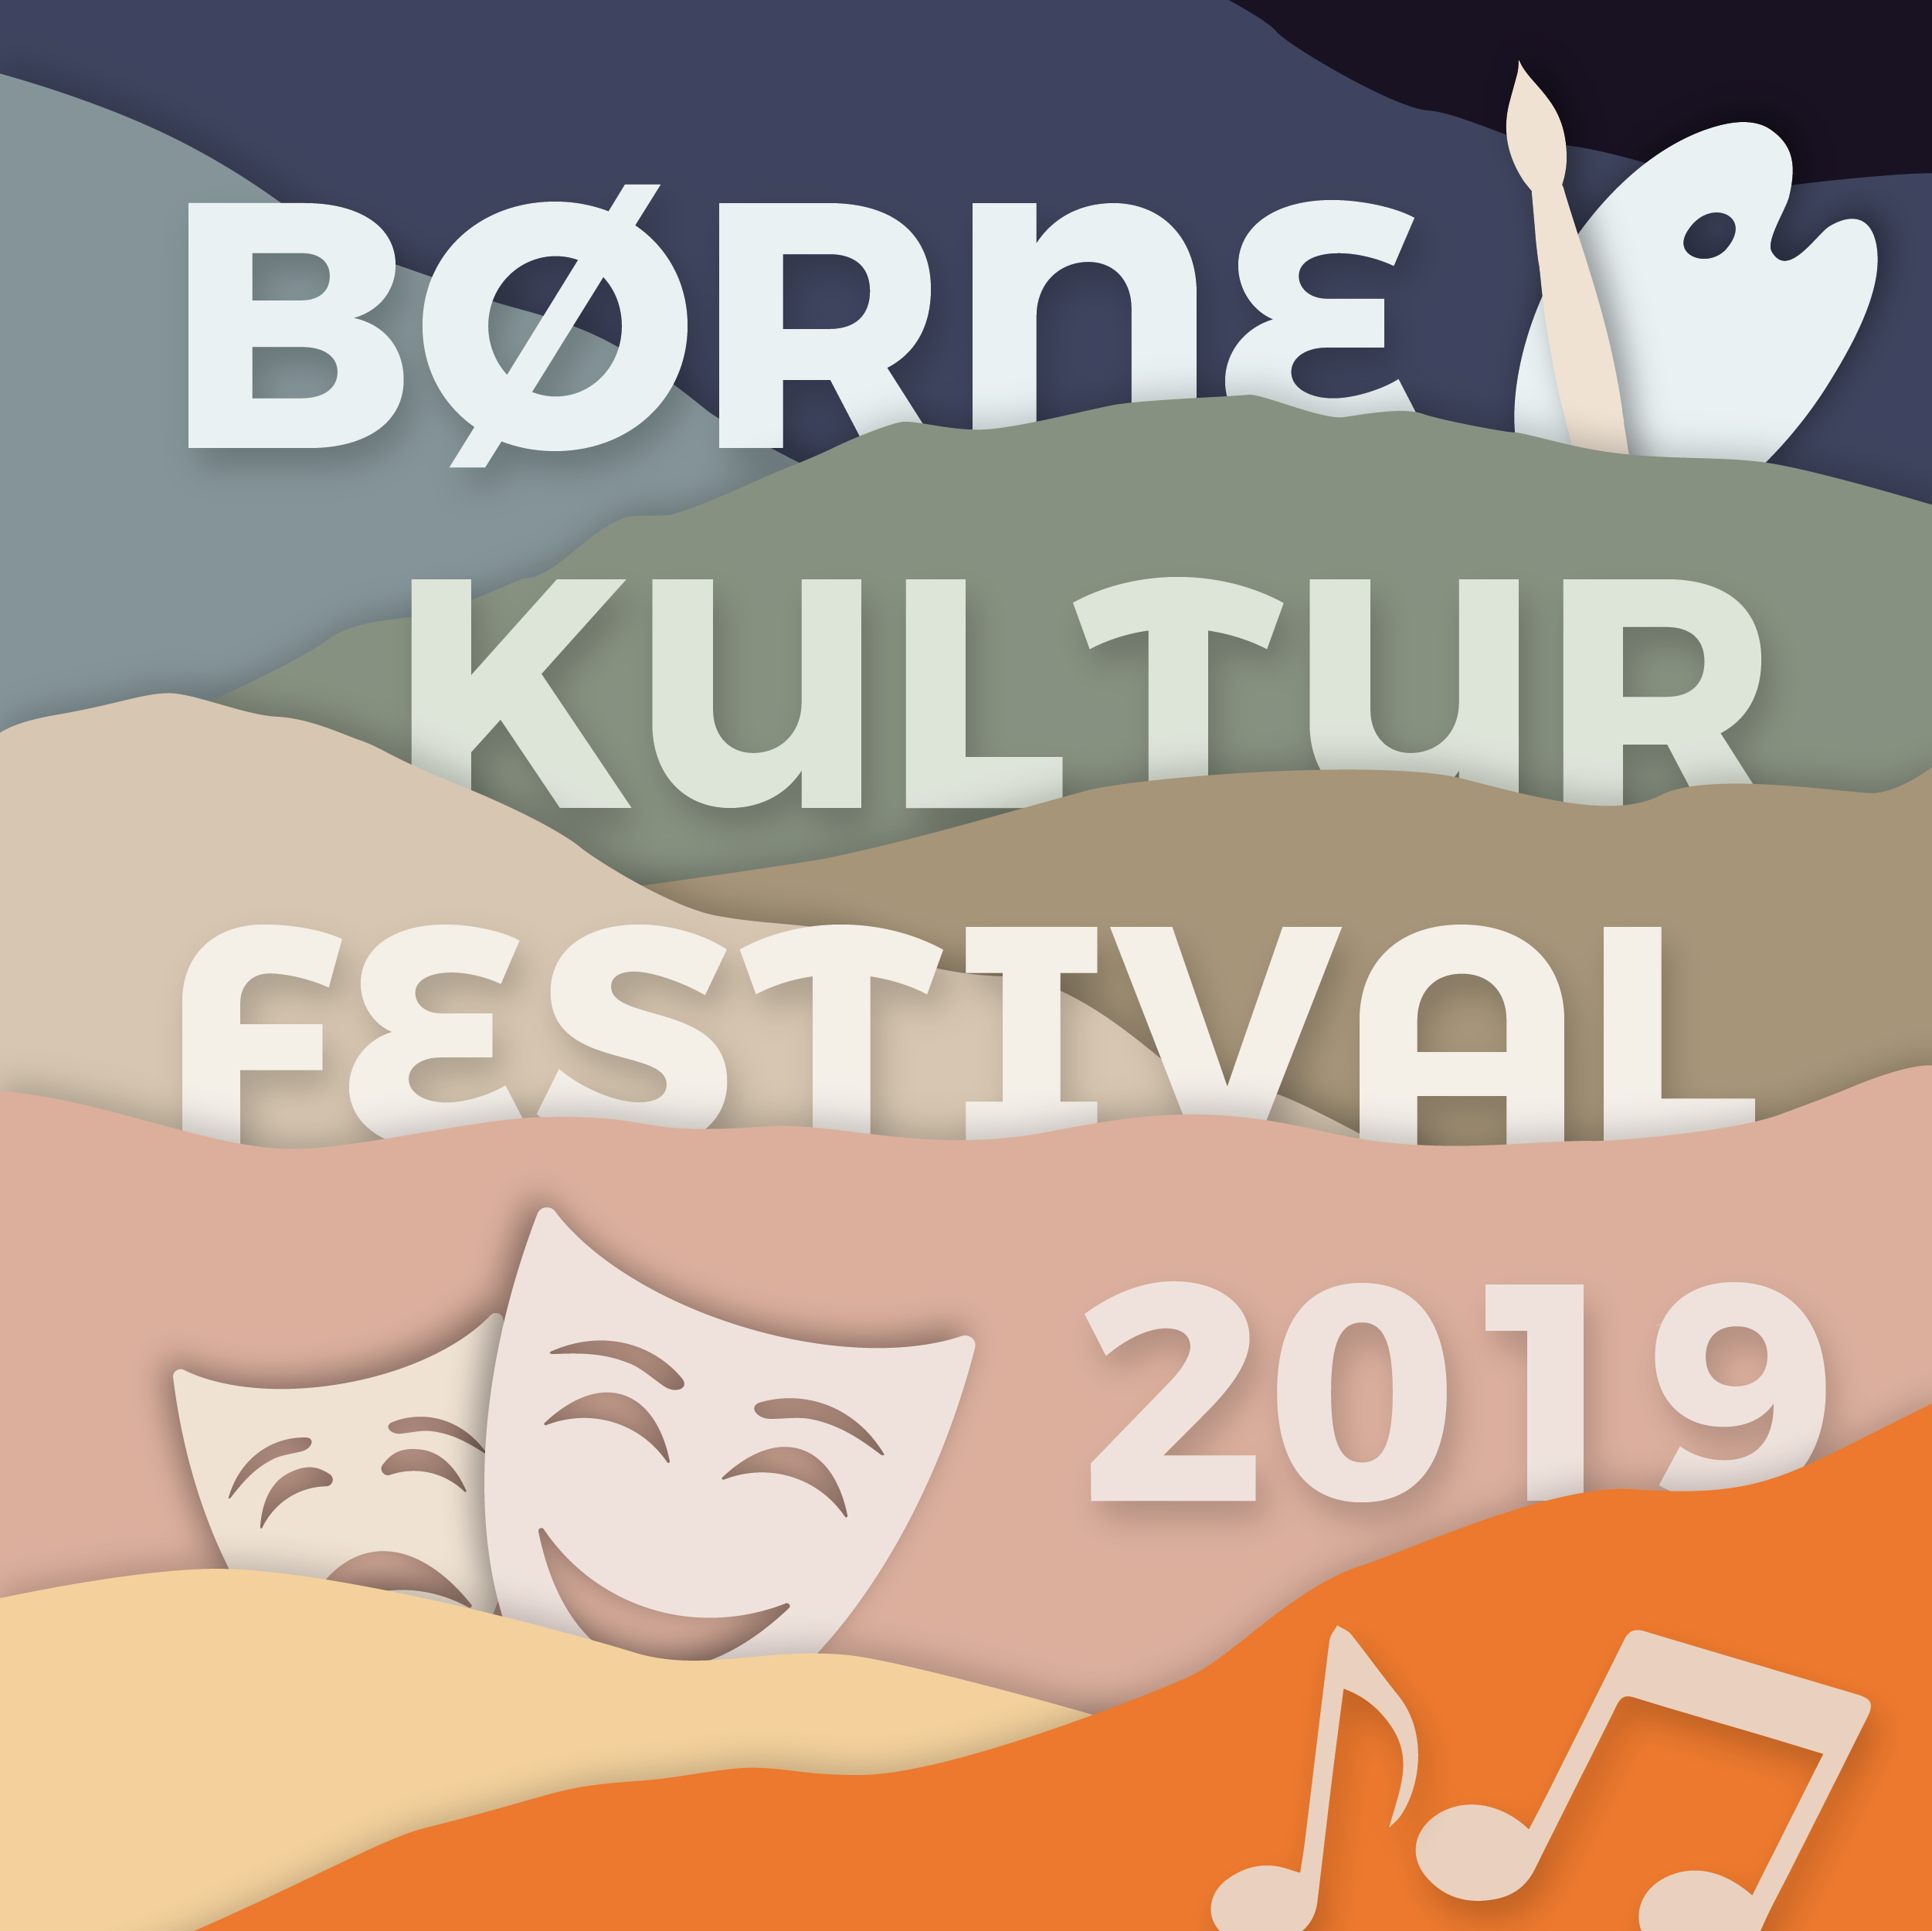 Børnekulturfestival d. 27. april i Knebel